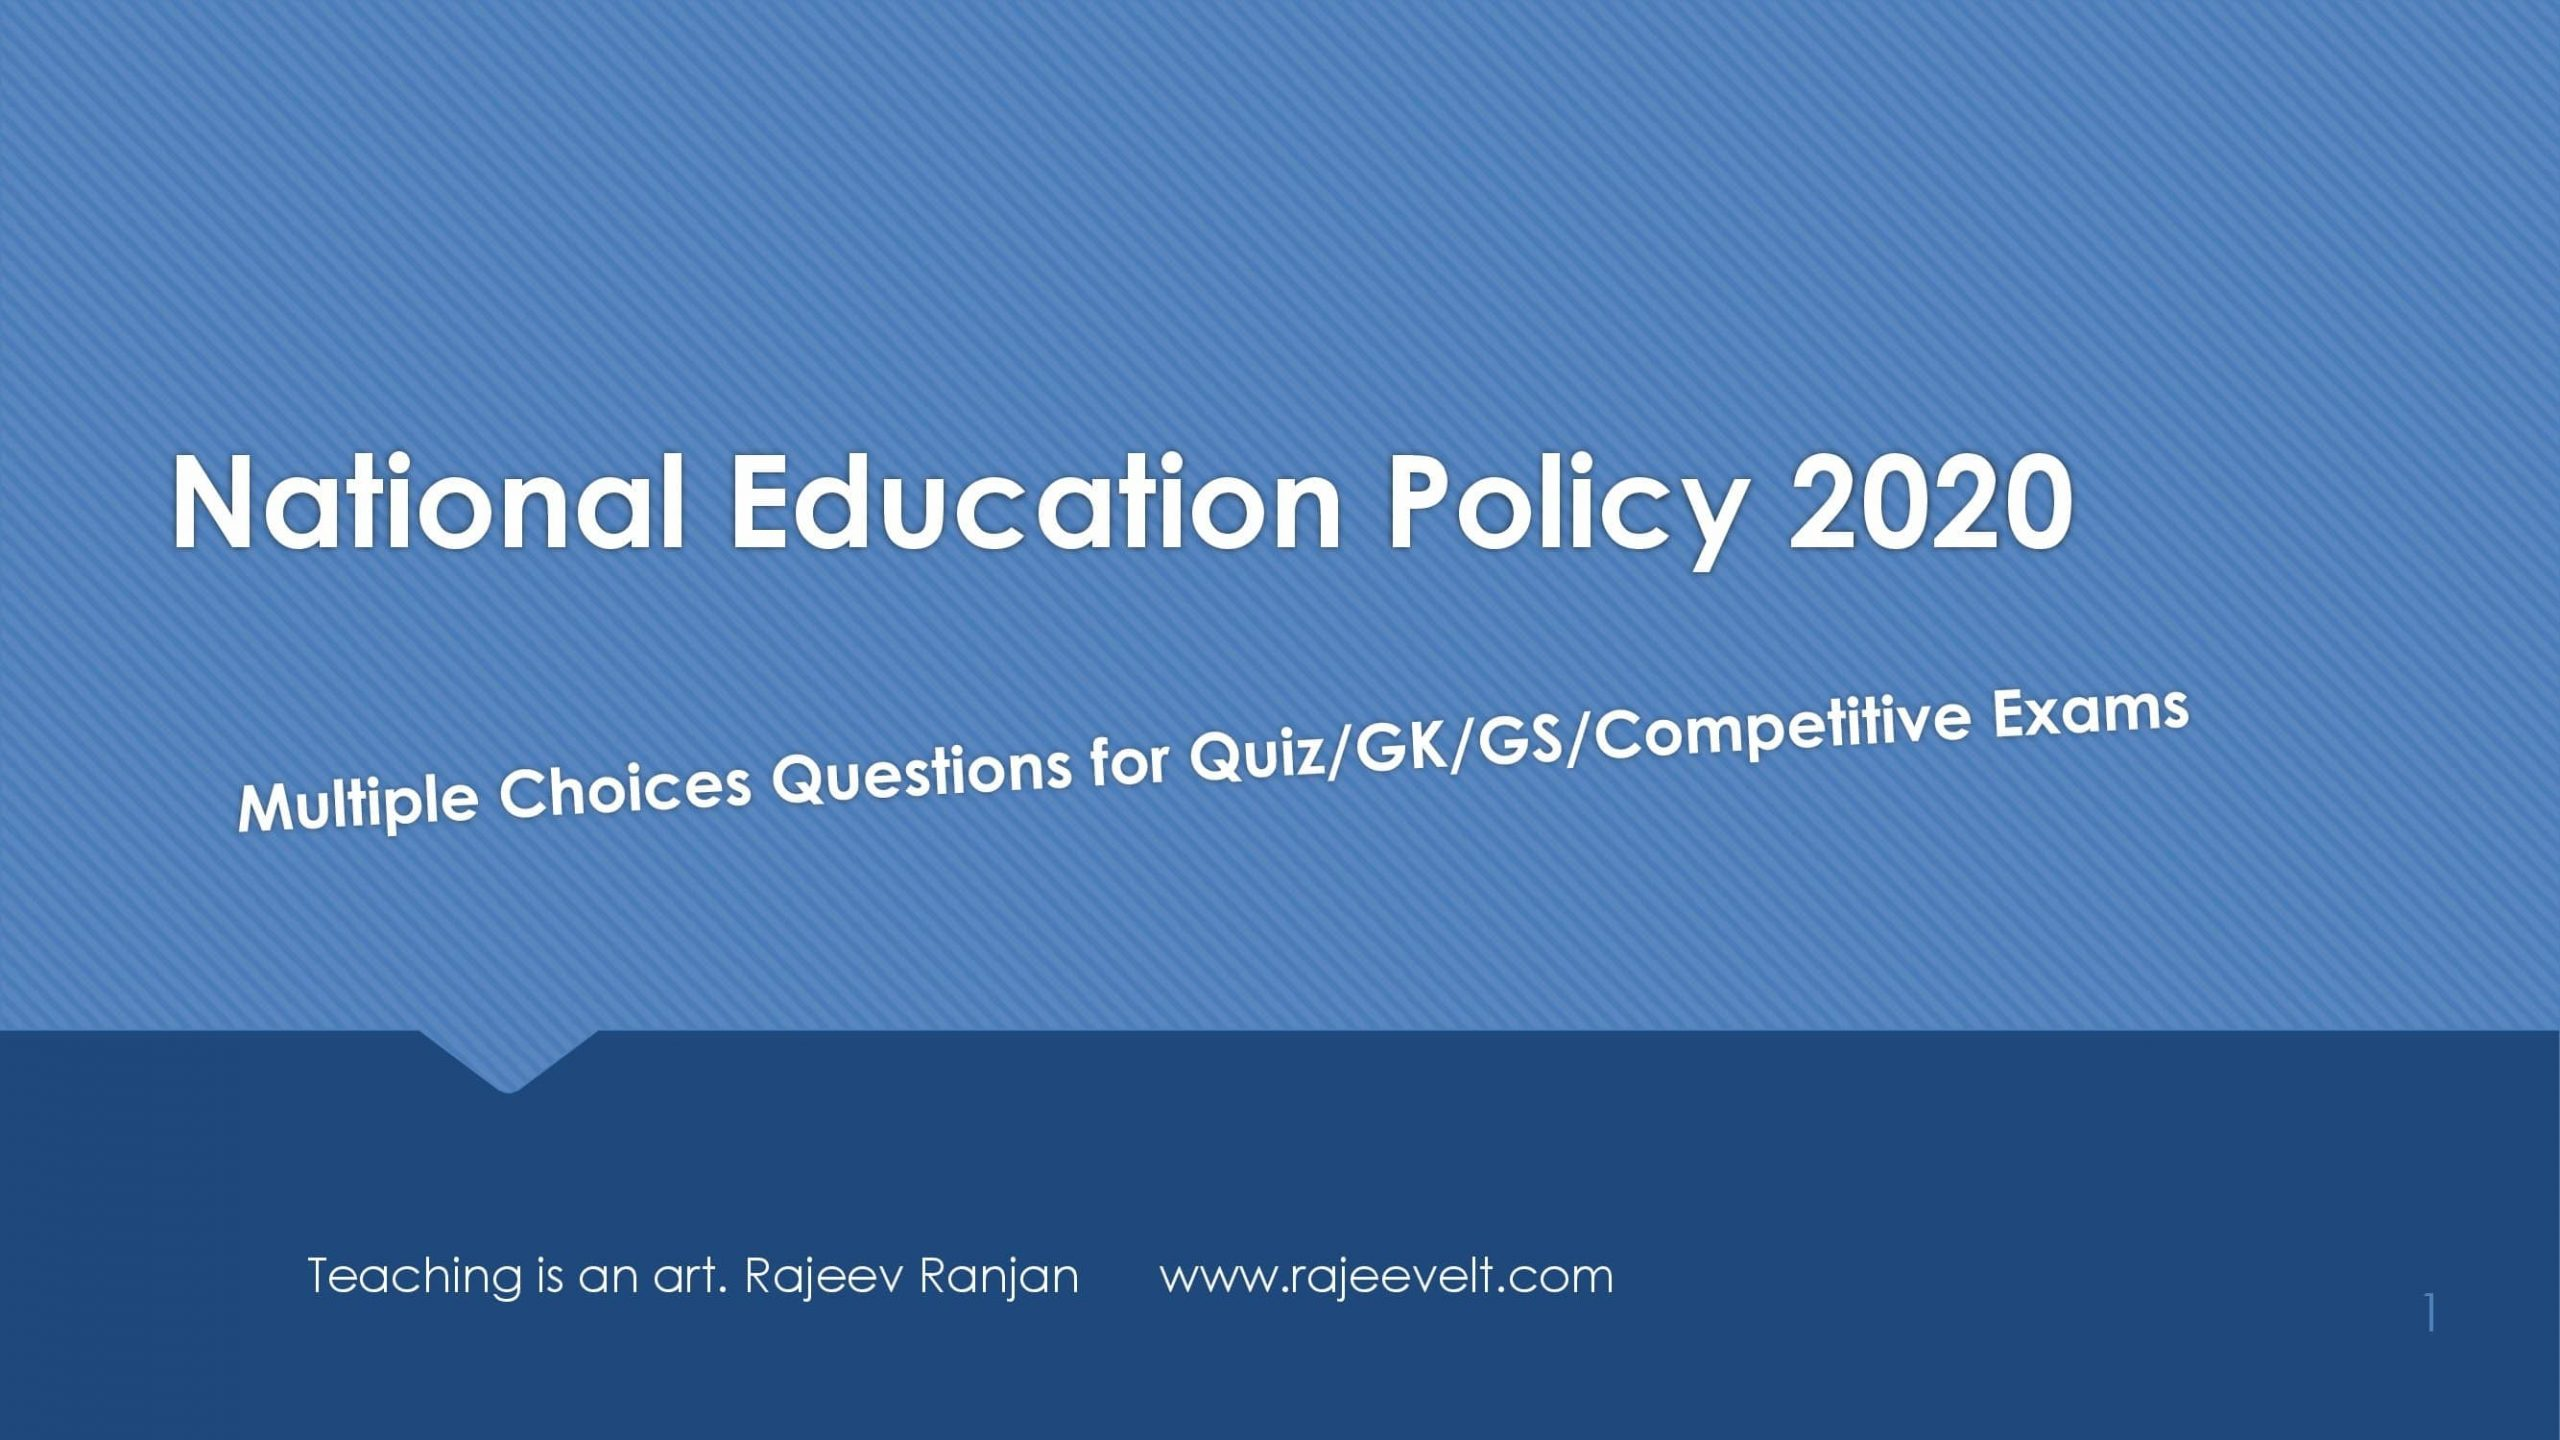 MCQs-FAQs-on-National-Education-Policy-2020-Set-3-rajeevelt